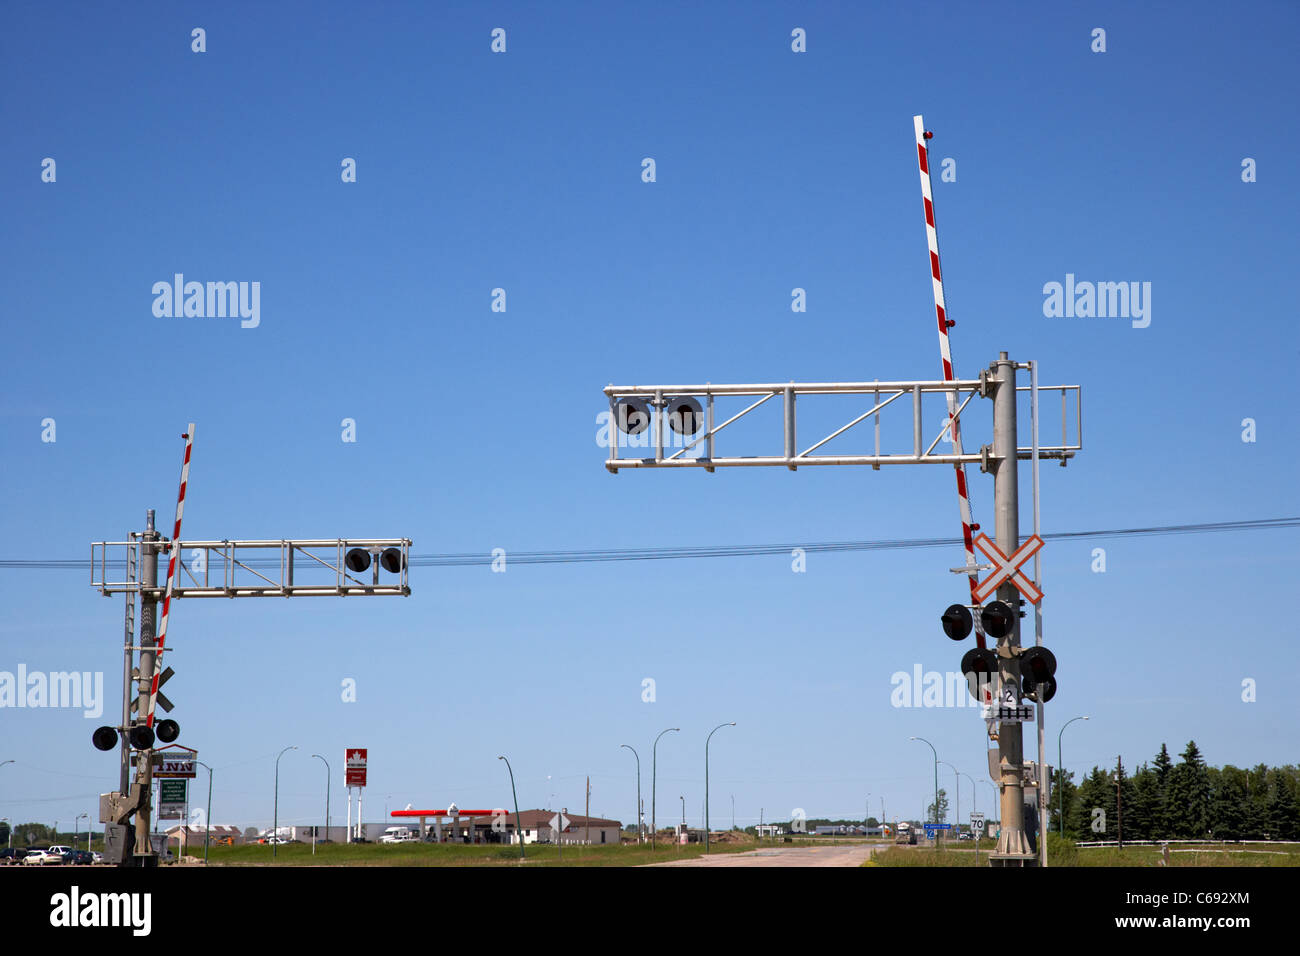 high level railroad crossing lights and barriers against blue sky Saskatchewan Canada - Stock Image